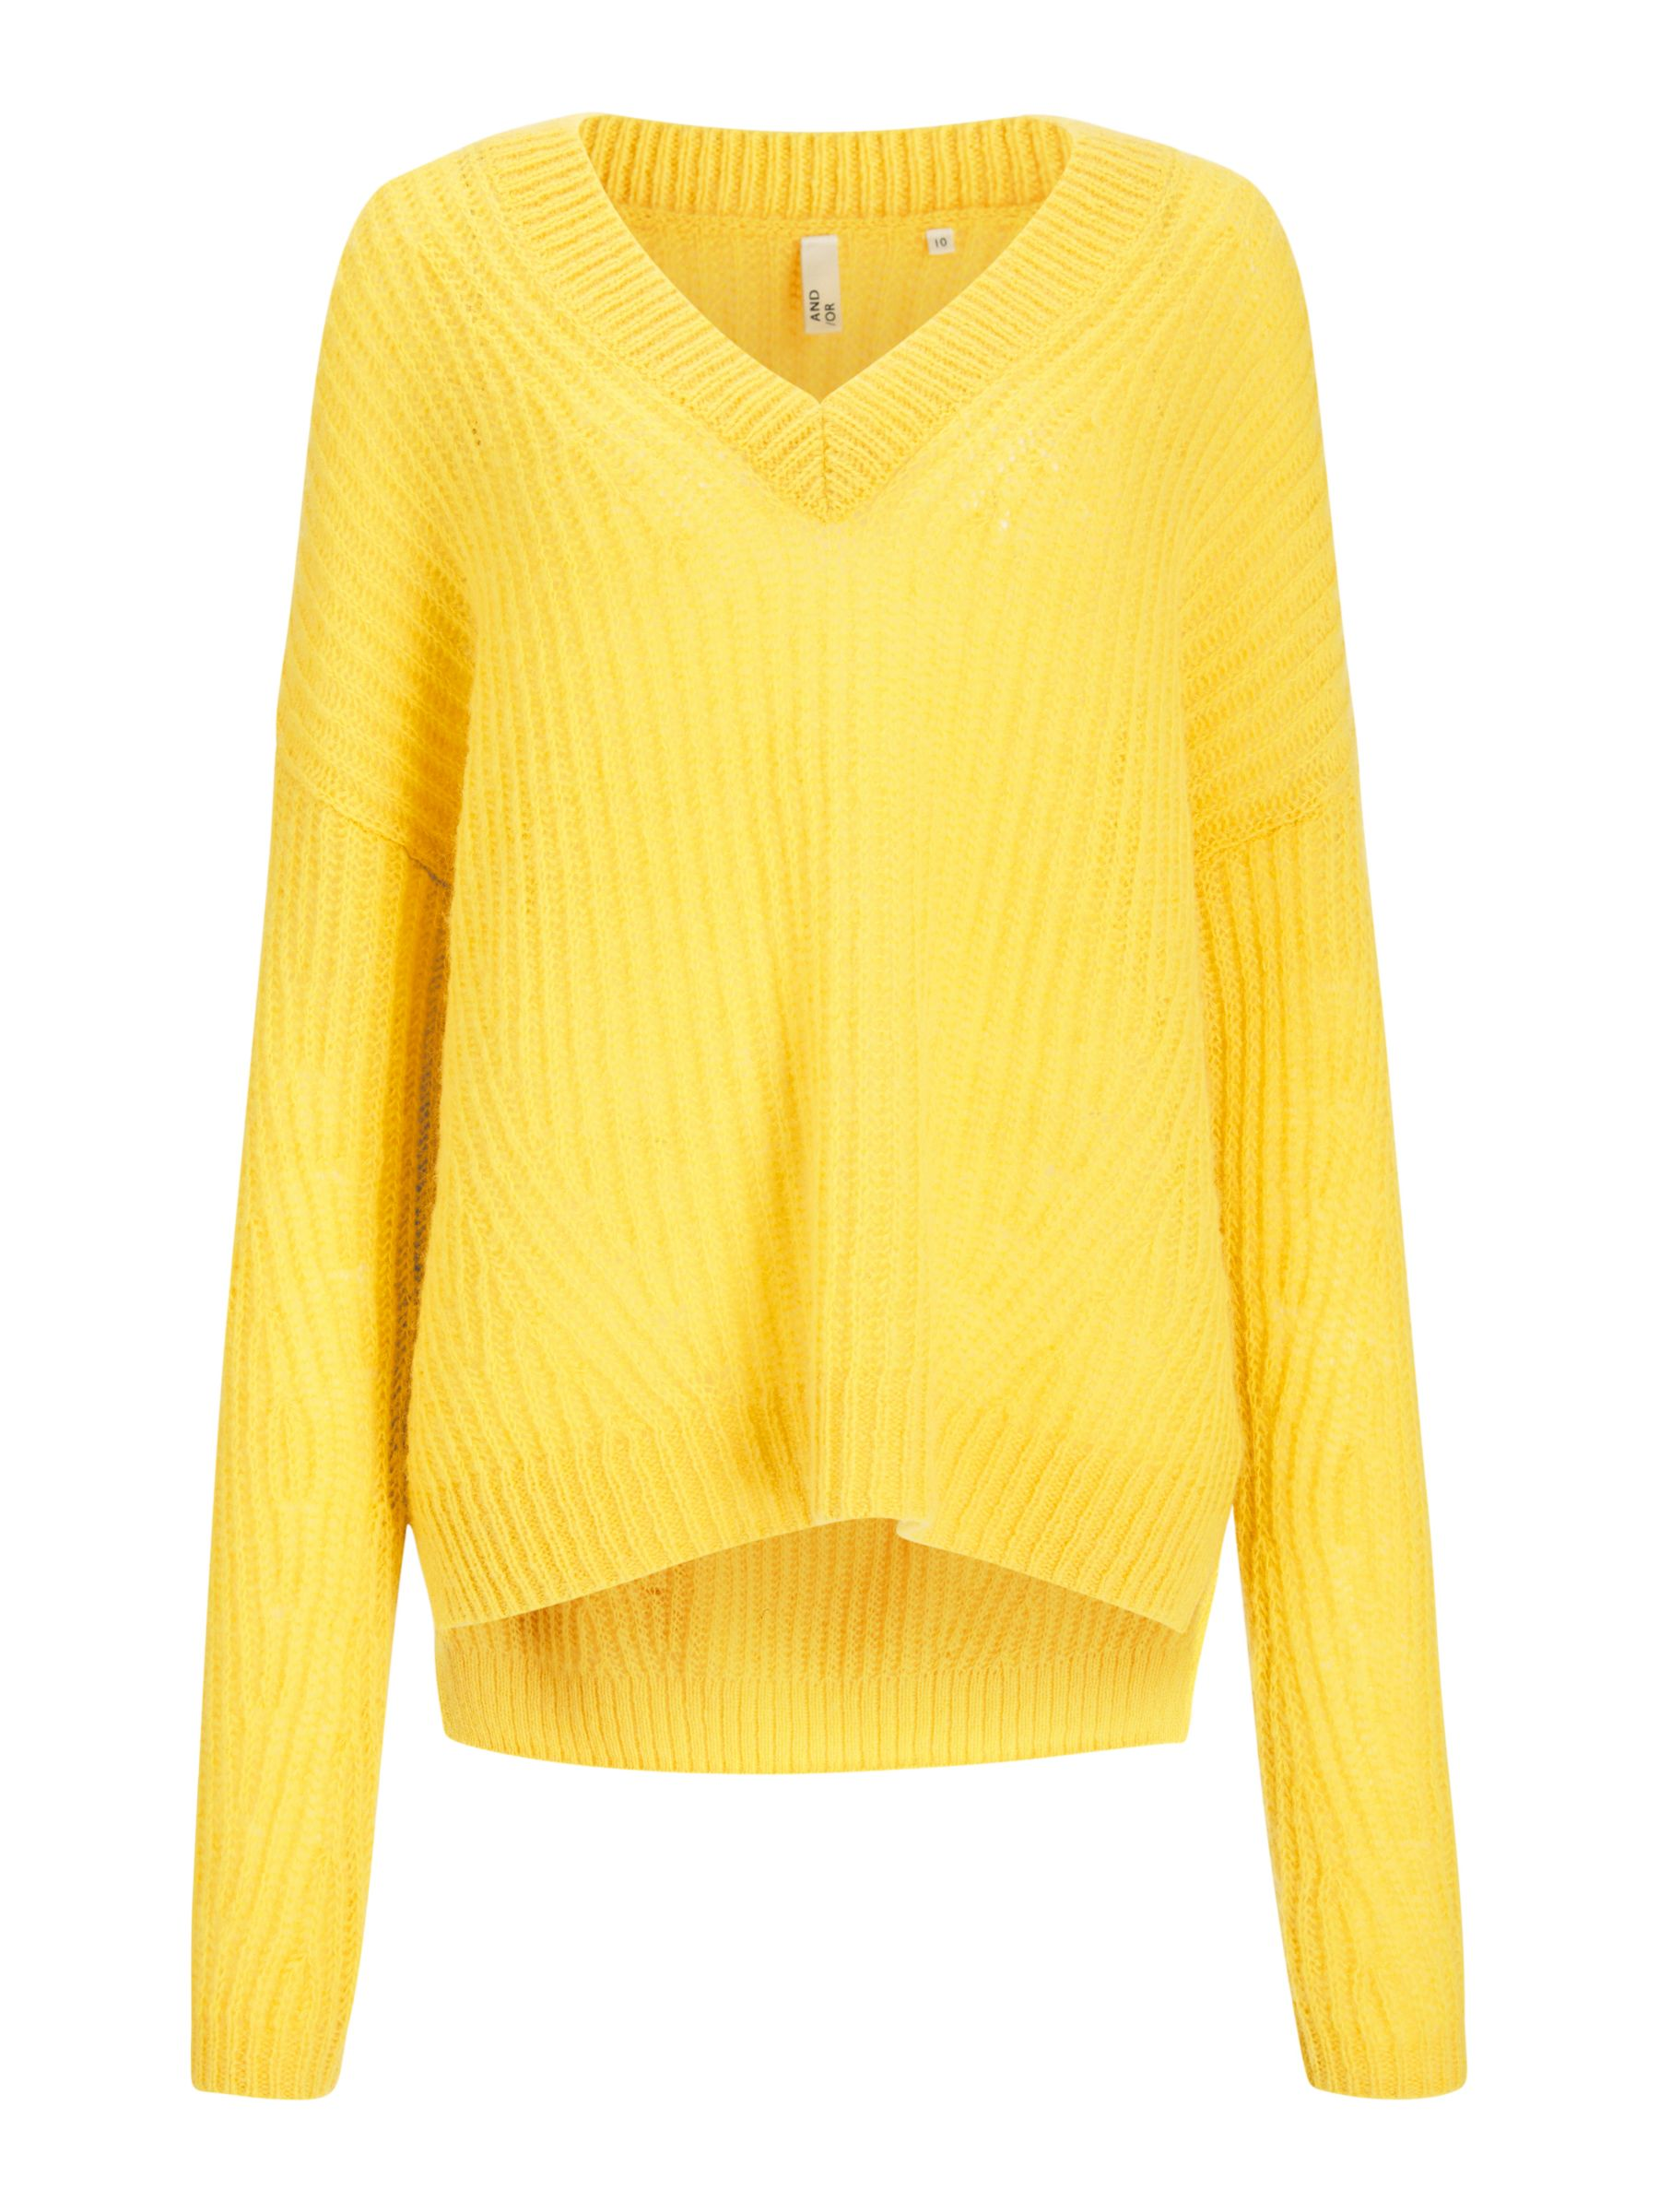 Buy AND/OR Bryony Textured Knit Jumper, Yellow, 8 Online at johnlewis.com